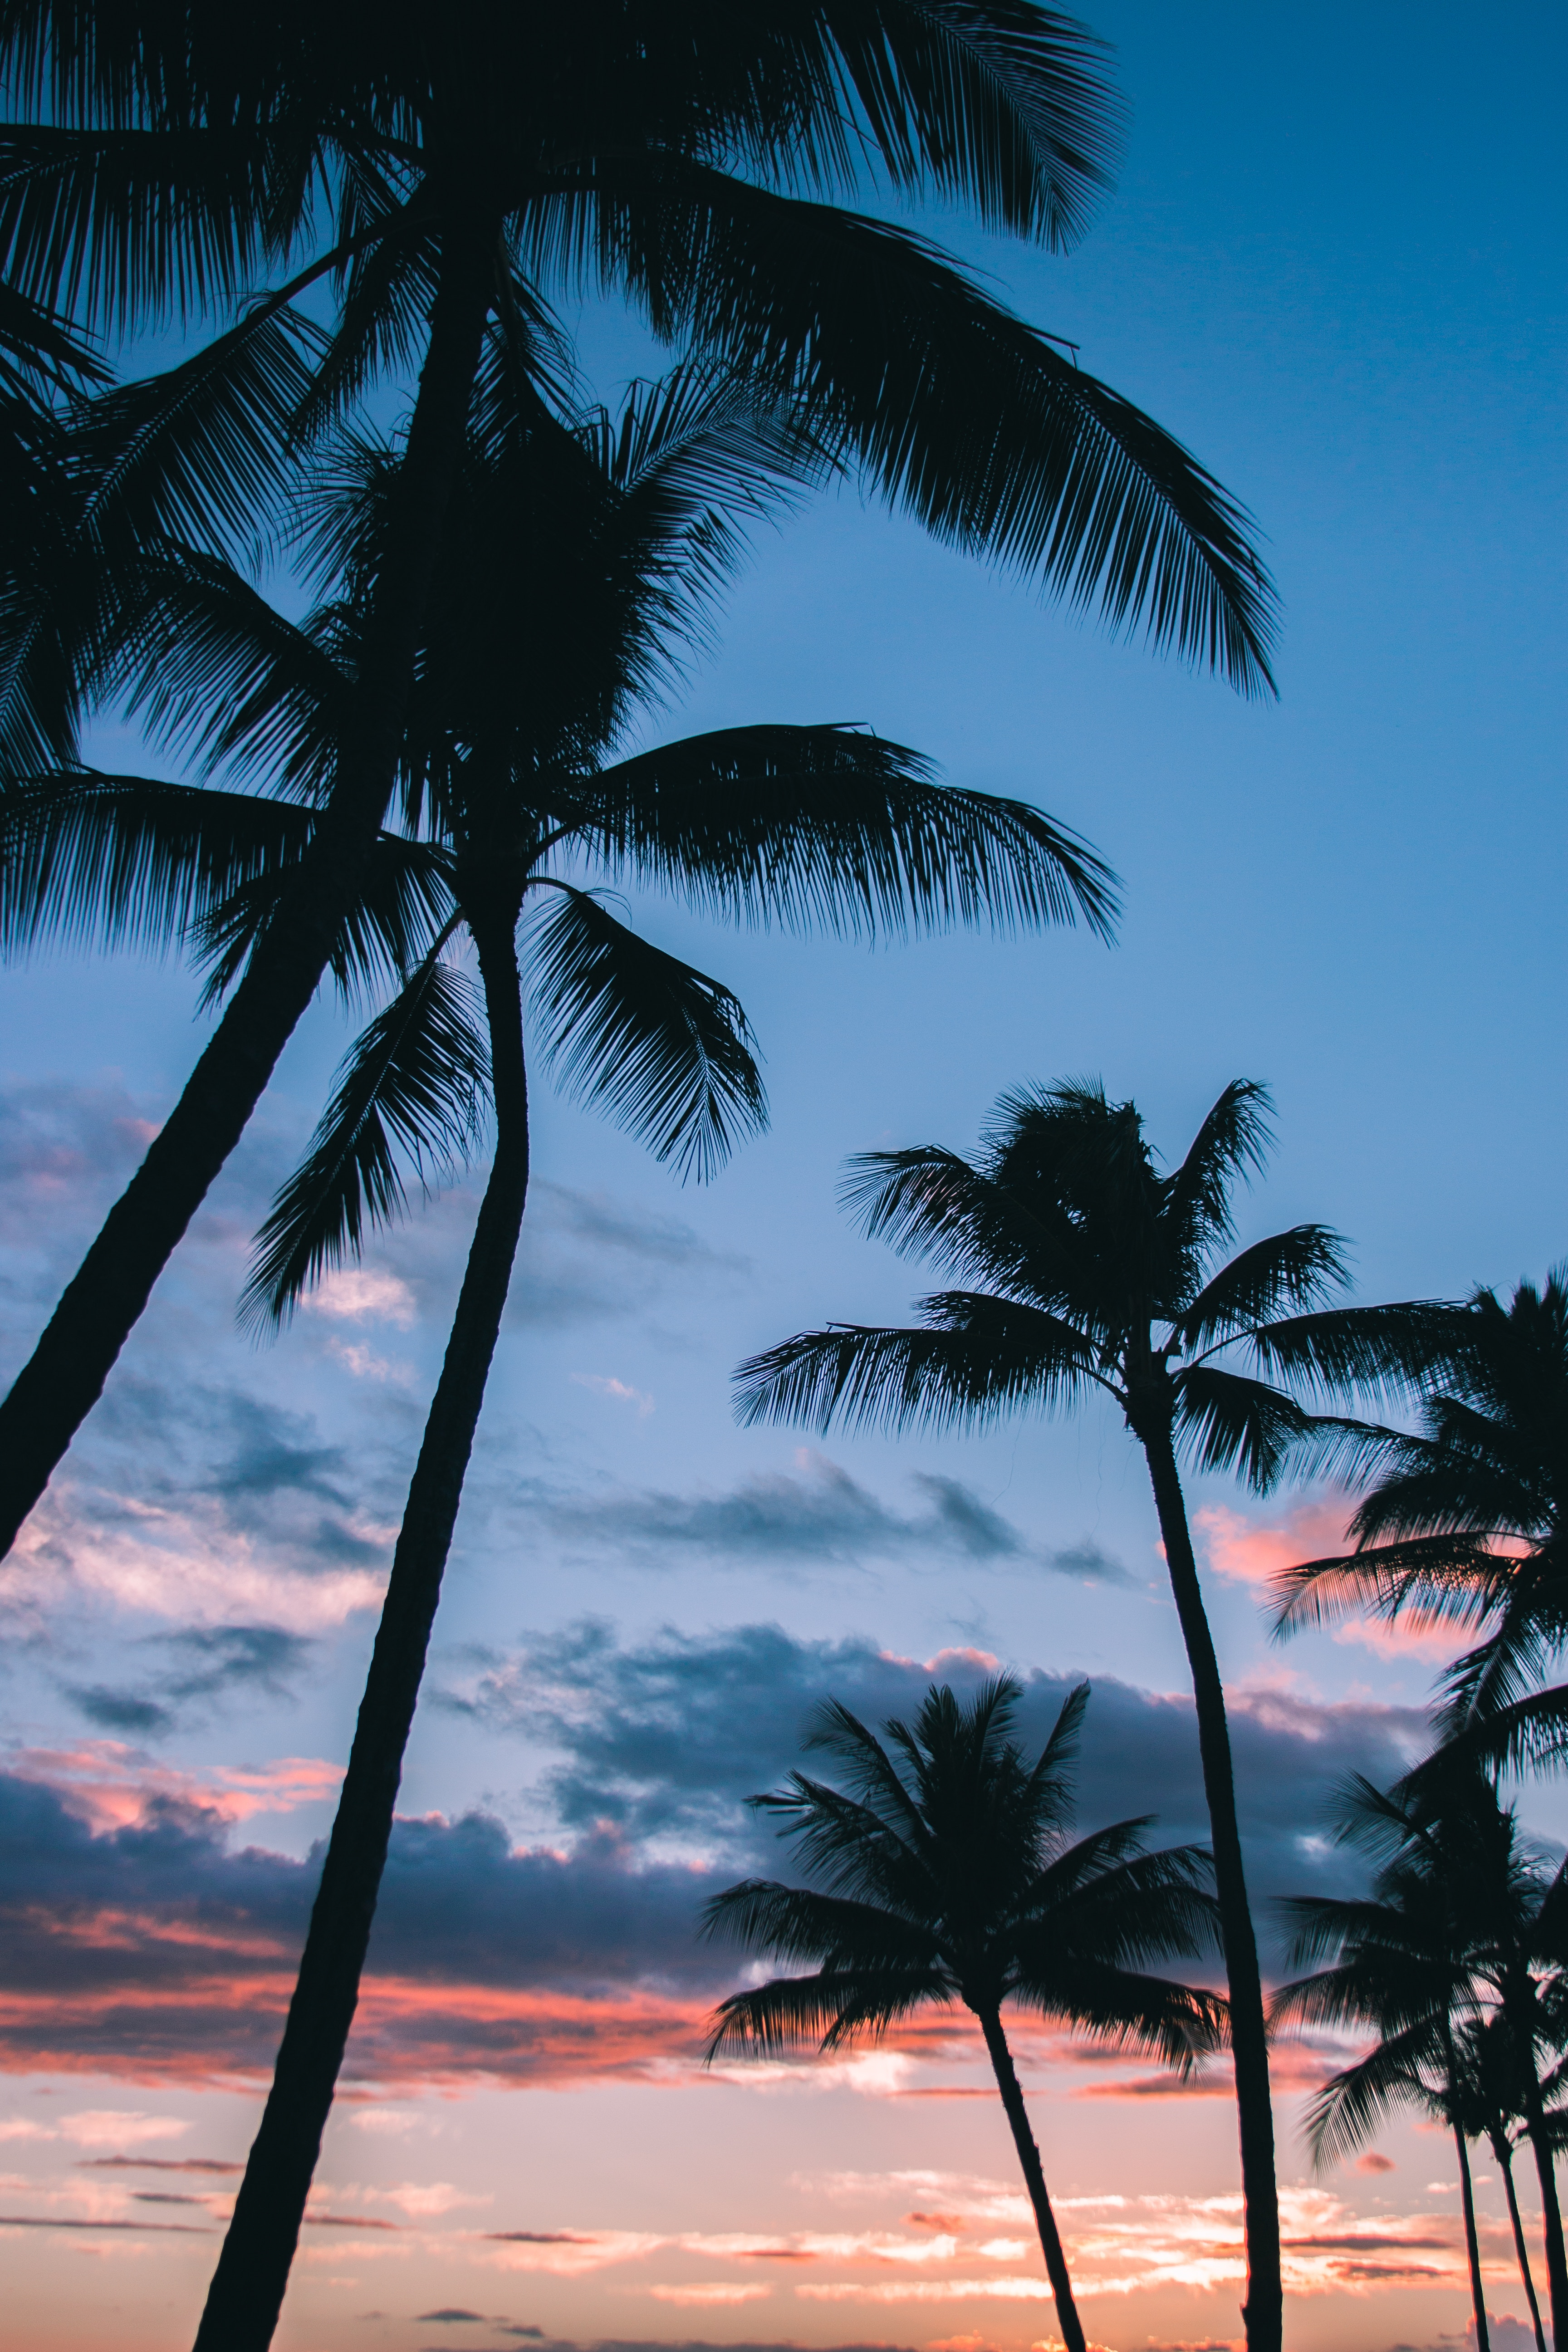 136899 download wallpaper Nature, Tropics, Sky, Branches, Palms screensavers and pictures for free